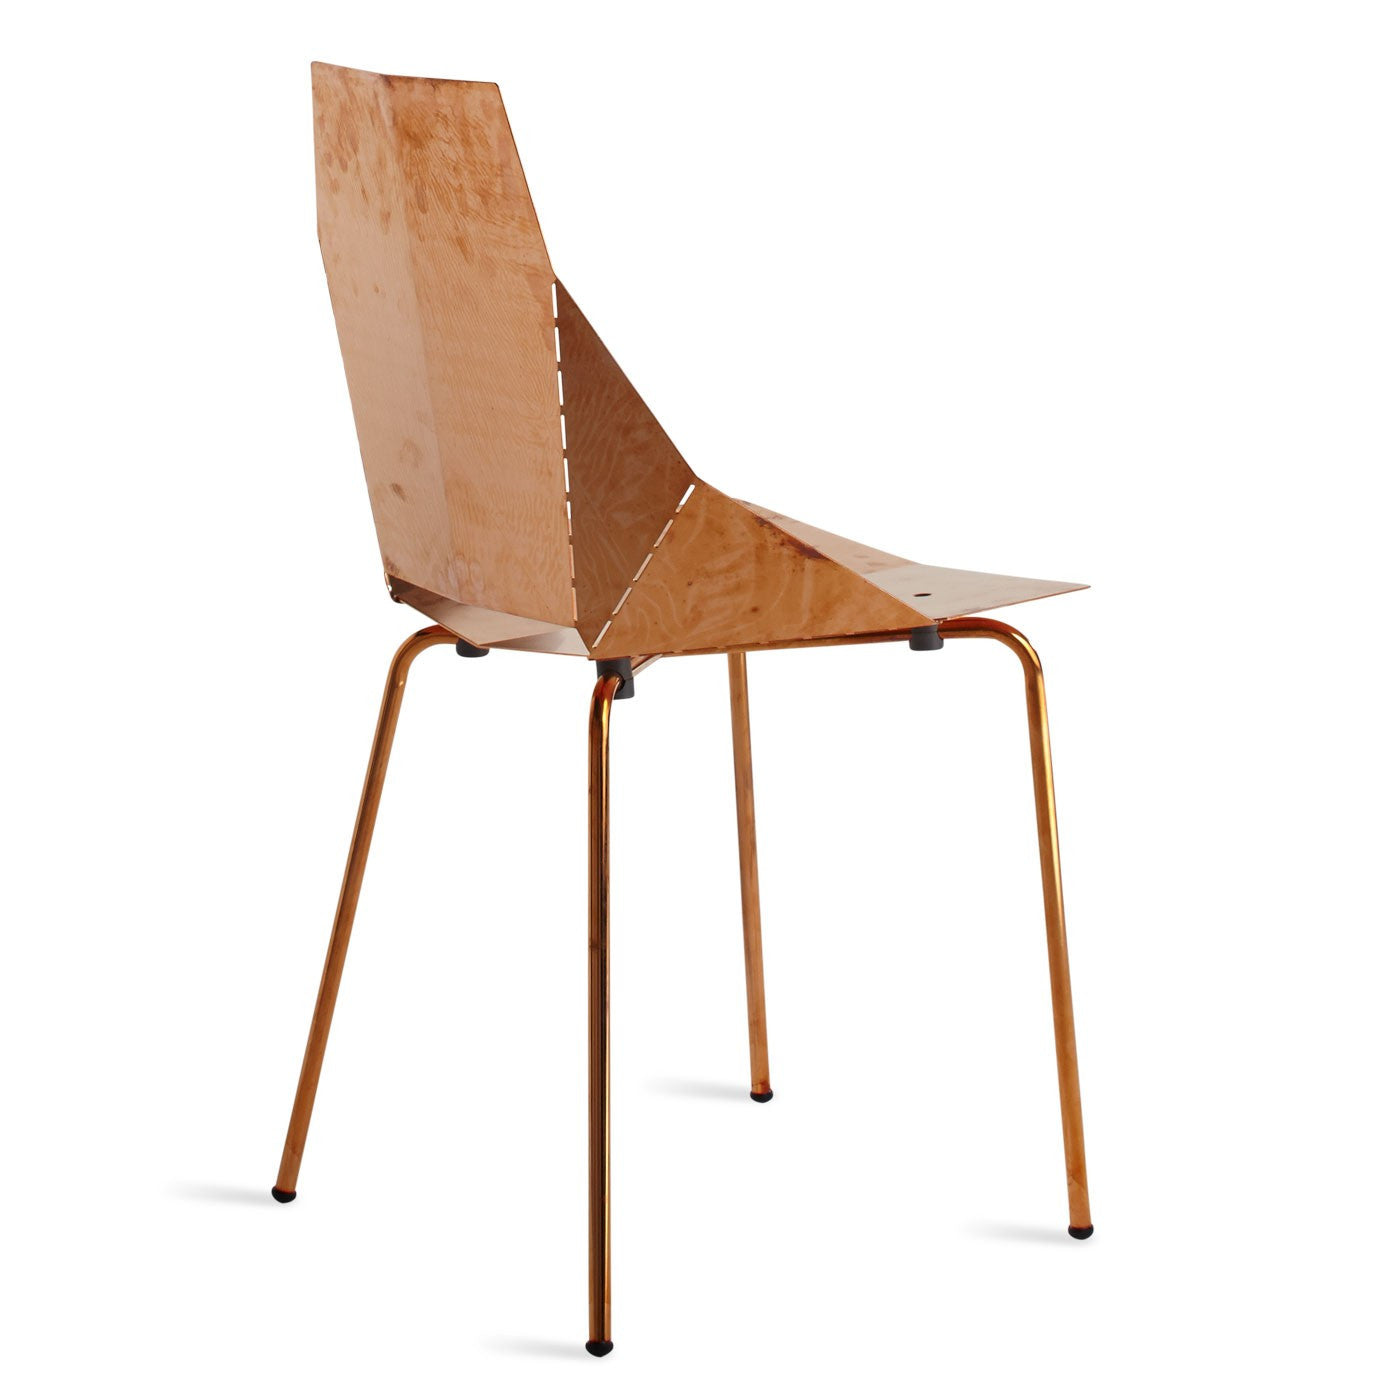 Real Good Copper Chair Area Furniture for the Modern Home